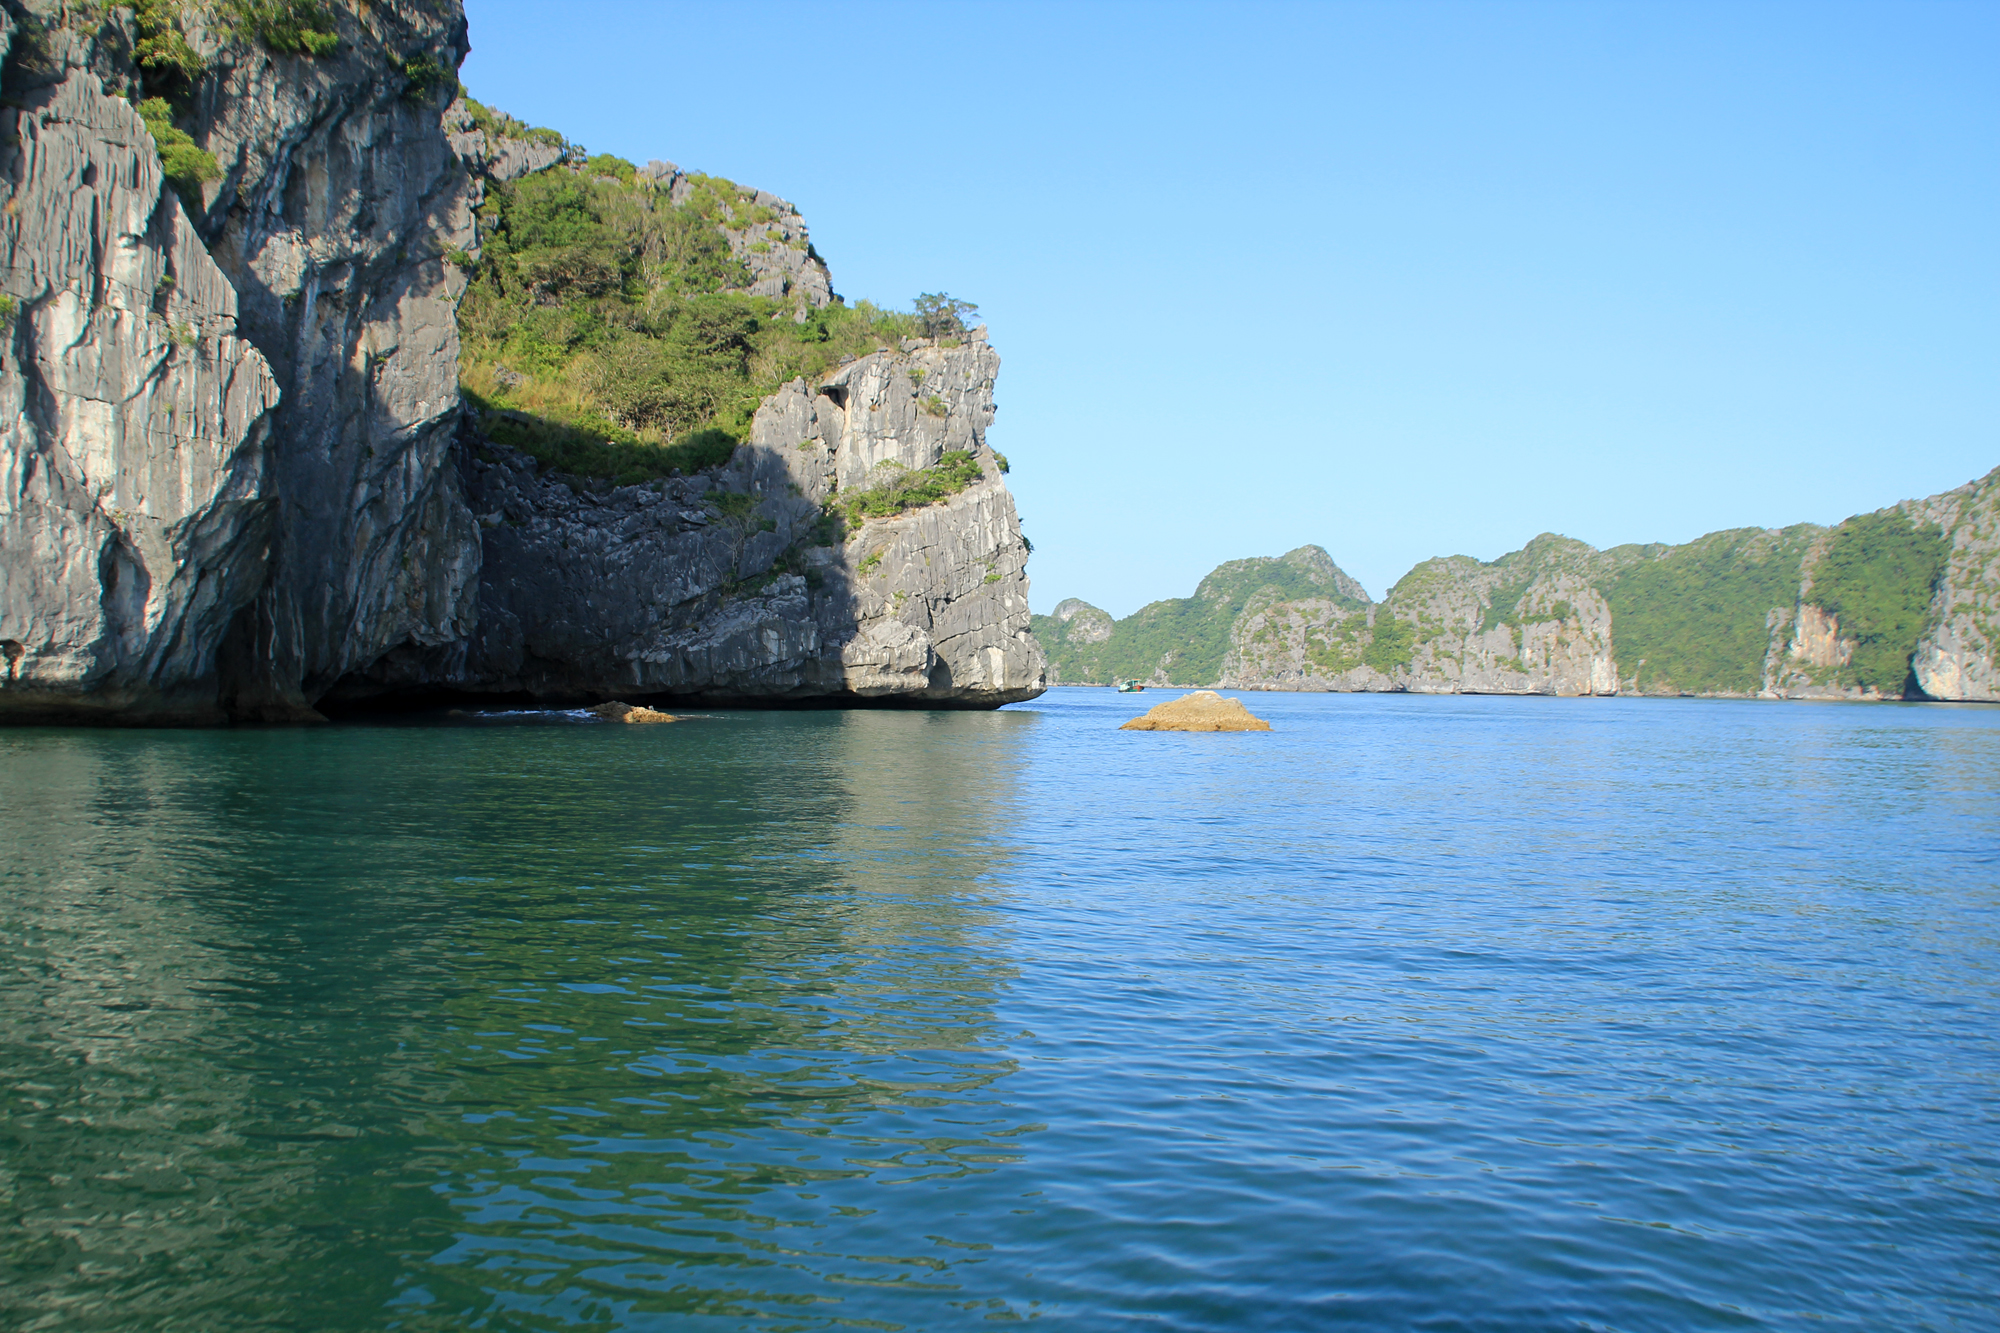 Halong Bay & Lan Ha bay Full Day Cruising Trip: Kayaking & Swimming